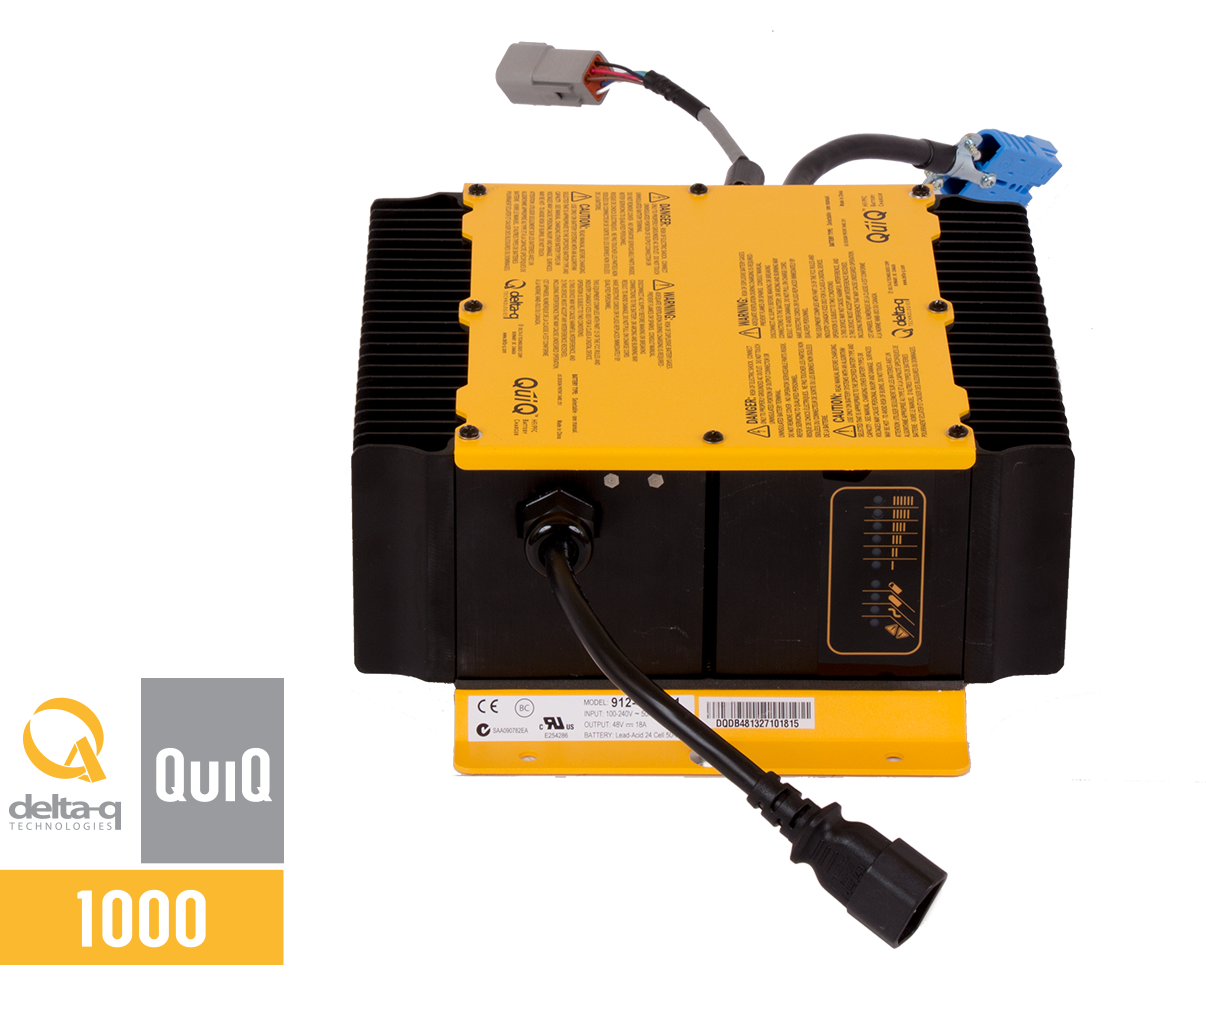 QuiQ 1000 Front quiq 1000 industrial battery charger delta q technologies quiq battery charger wiring diagram at fashall.co